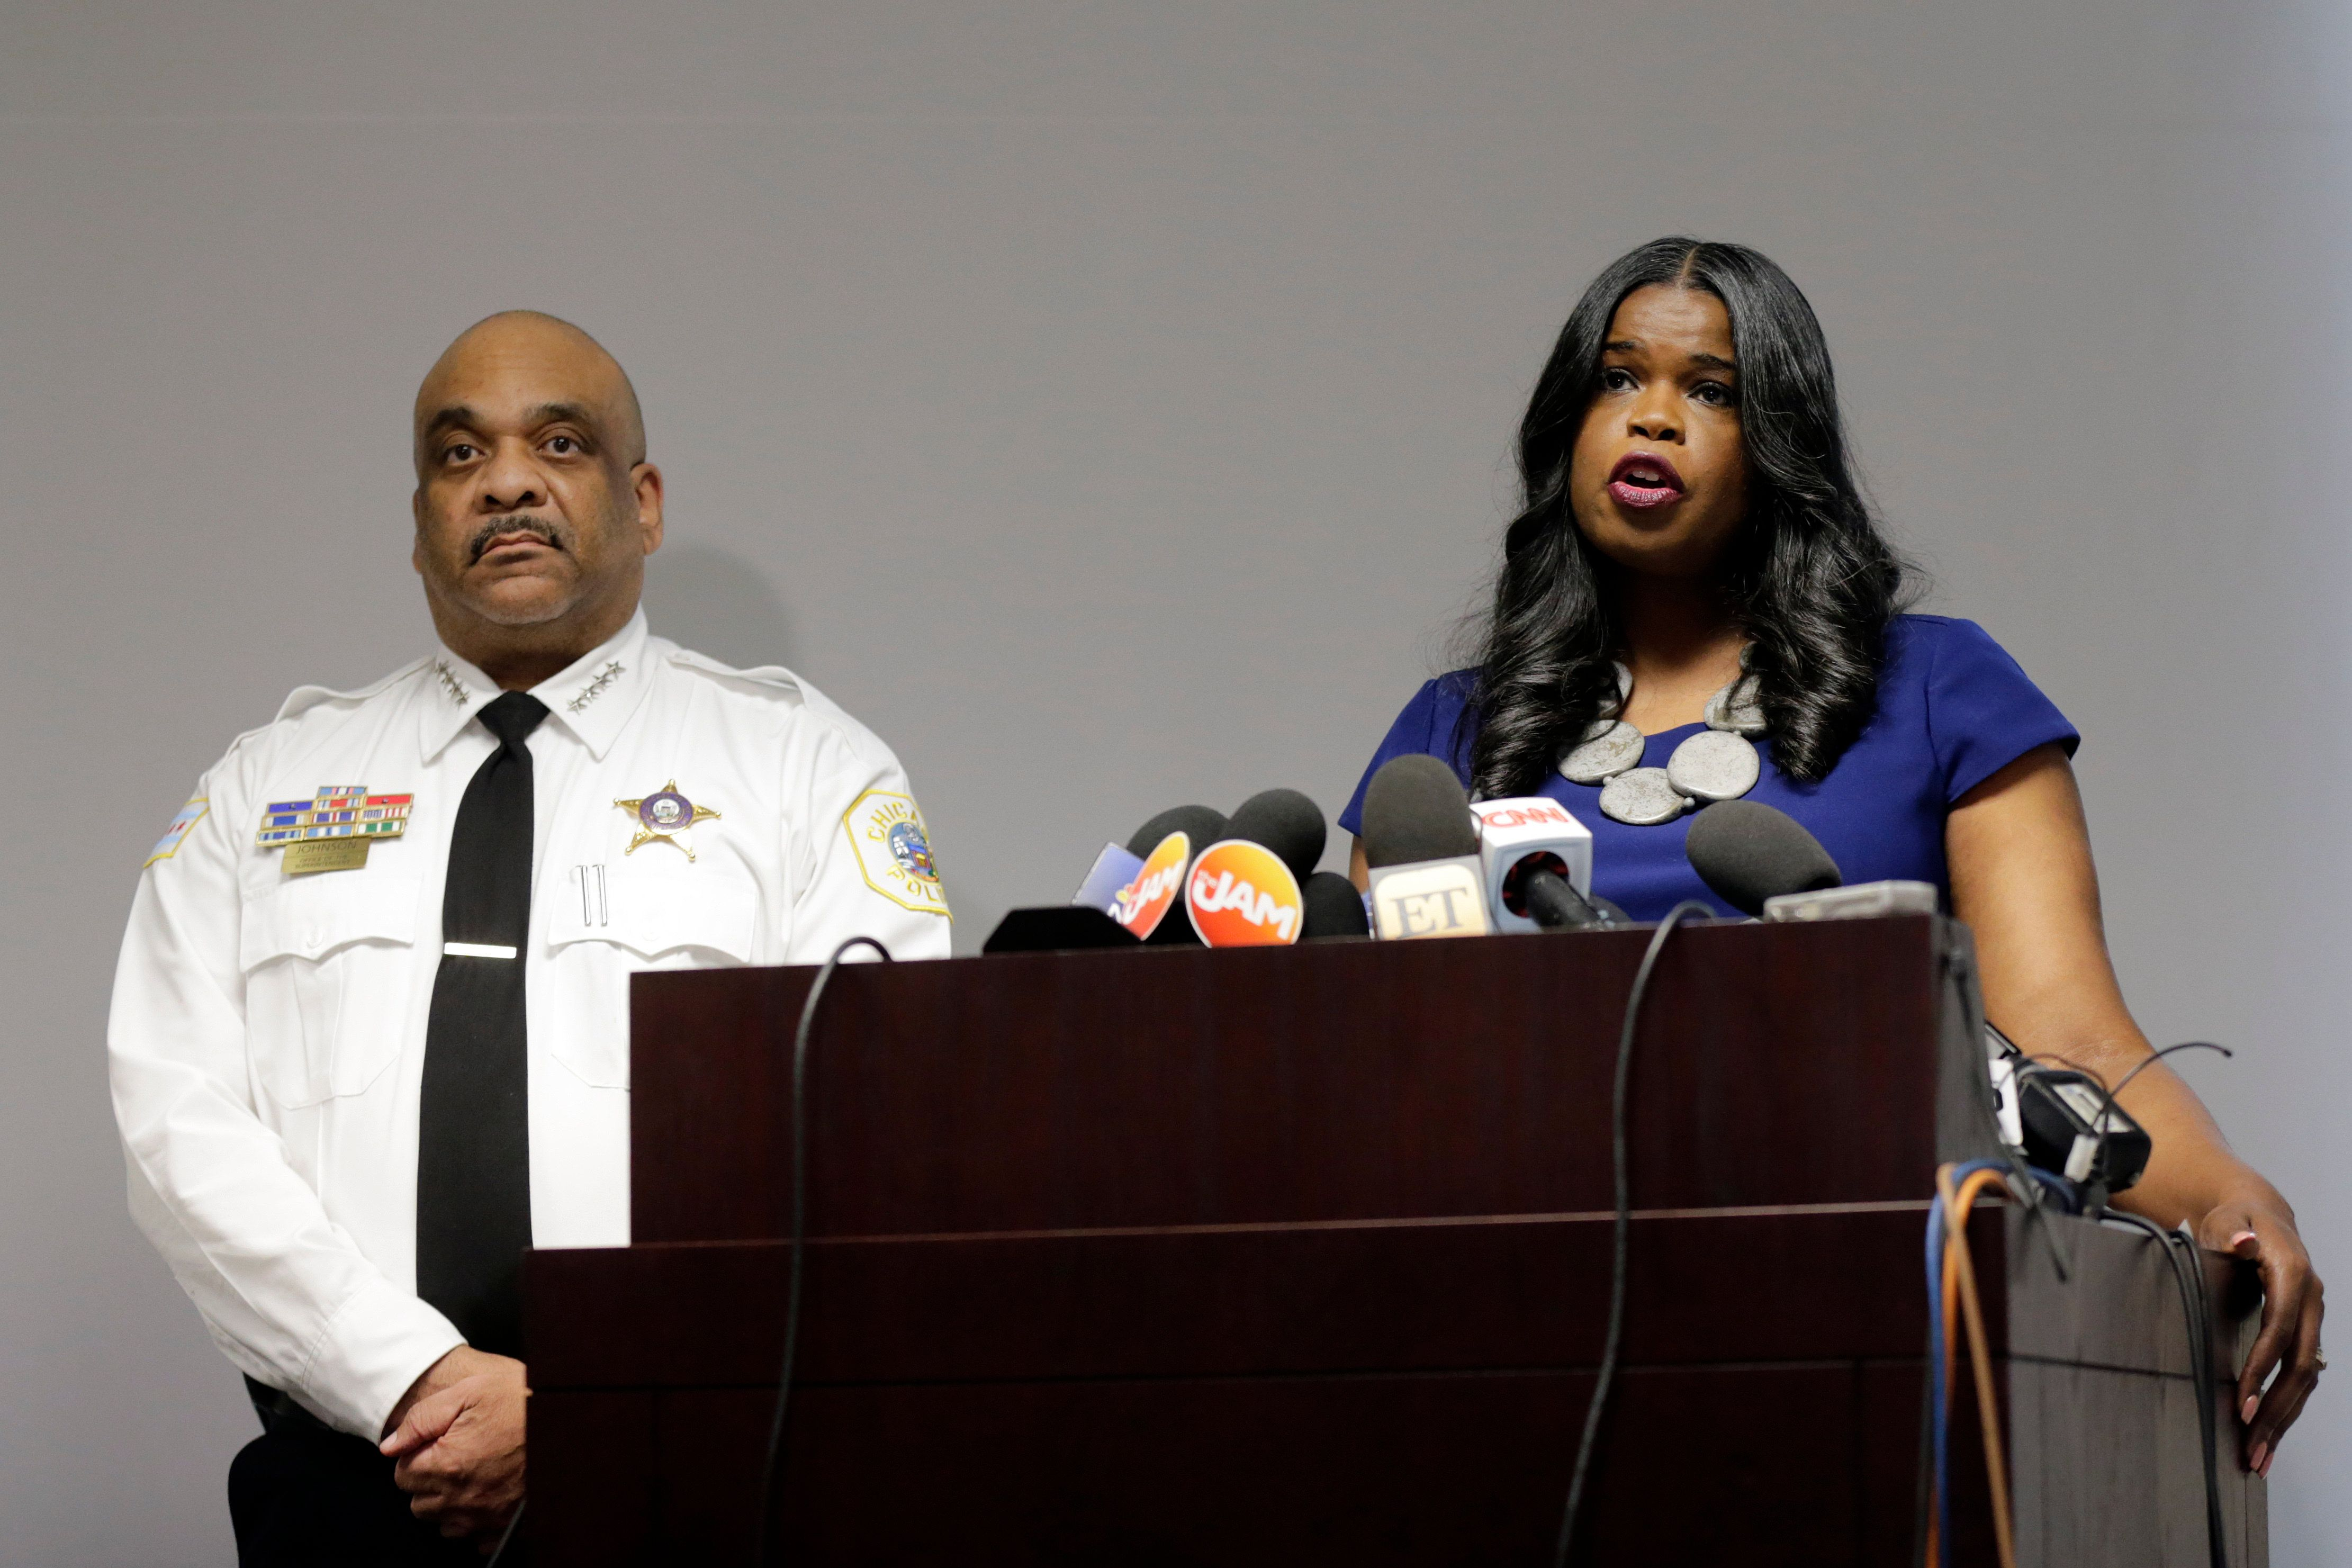 "FILE - In this Feb. 22, 2019, file photo, Cook County State's Attorney Kim Foxx, right, speaks at a news conference as Chicago Police Superintendent Eddie Johnson listens in Chicago. The outrage was swift and overwhelming: How could prosecutors in Chicago drop charges against former ""Empire"" cast member Jussie Smollett for allegedly orchestrating a fake attack and allow him to wipe his record clean without so much as an apology? But for all of the public outrage, the Chicago Police Department and Cook County State's Attorney's Office insist their relationship is strong, even if they didn't agree on the outcome in Smollett's case. (AP Photo/Kiichiro Sato, File)"